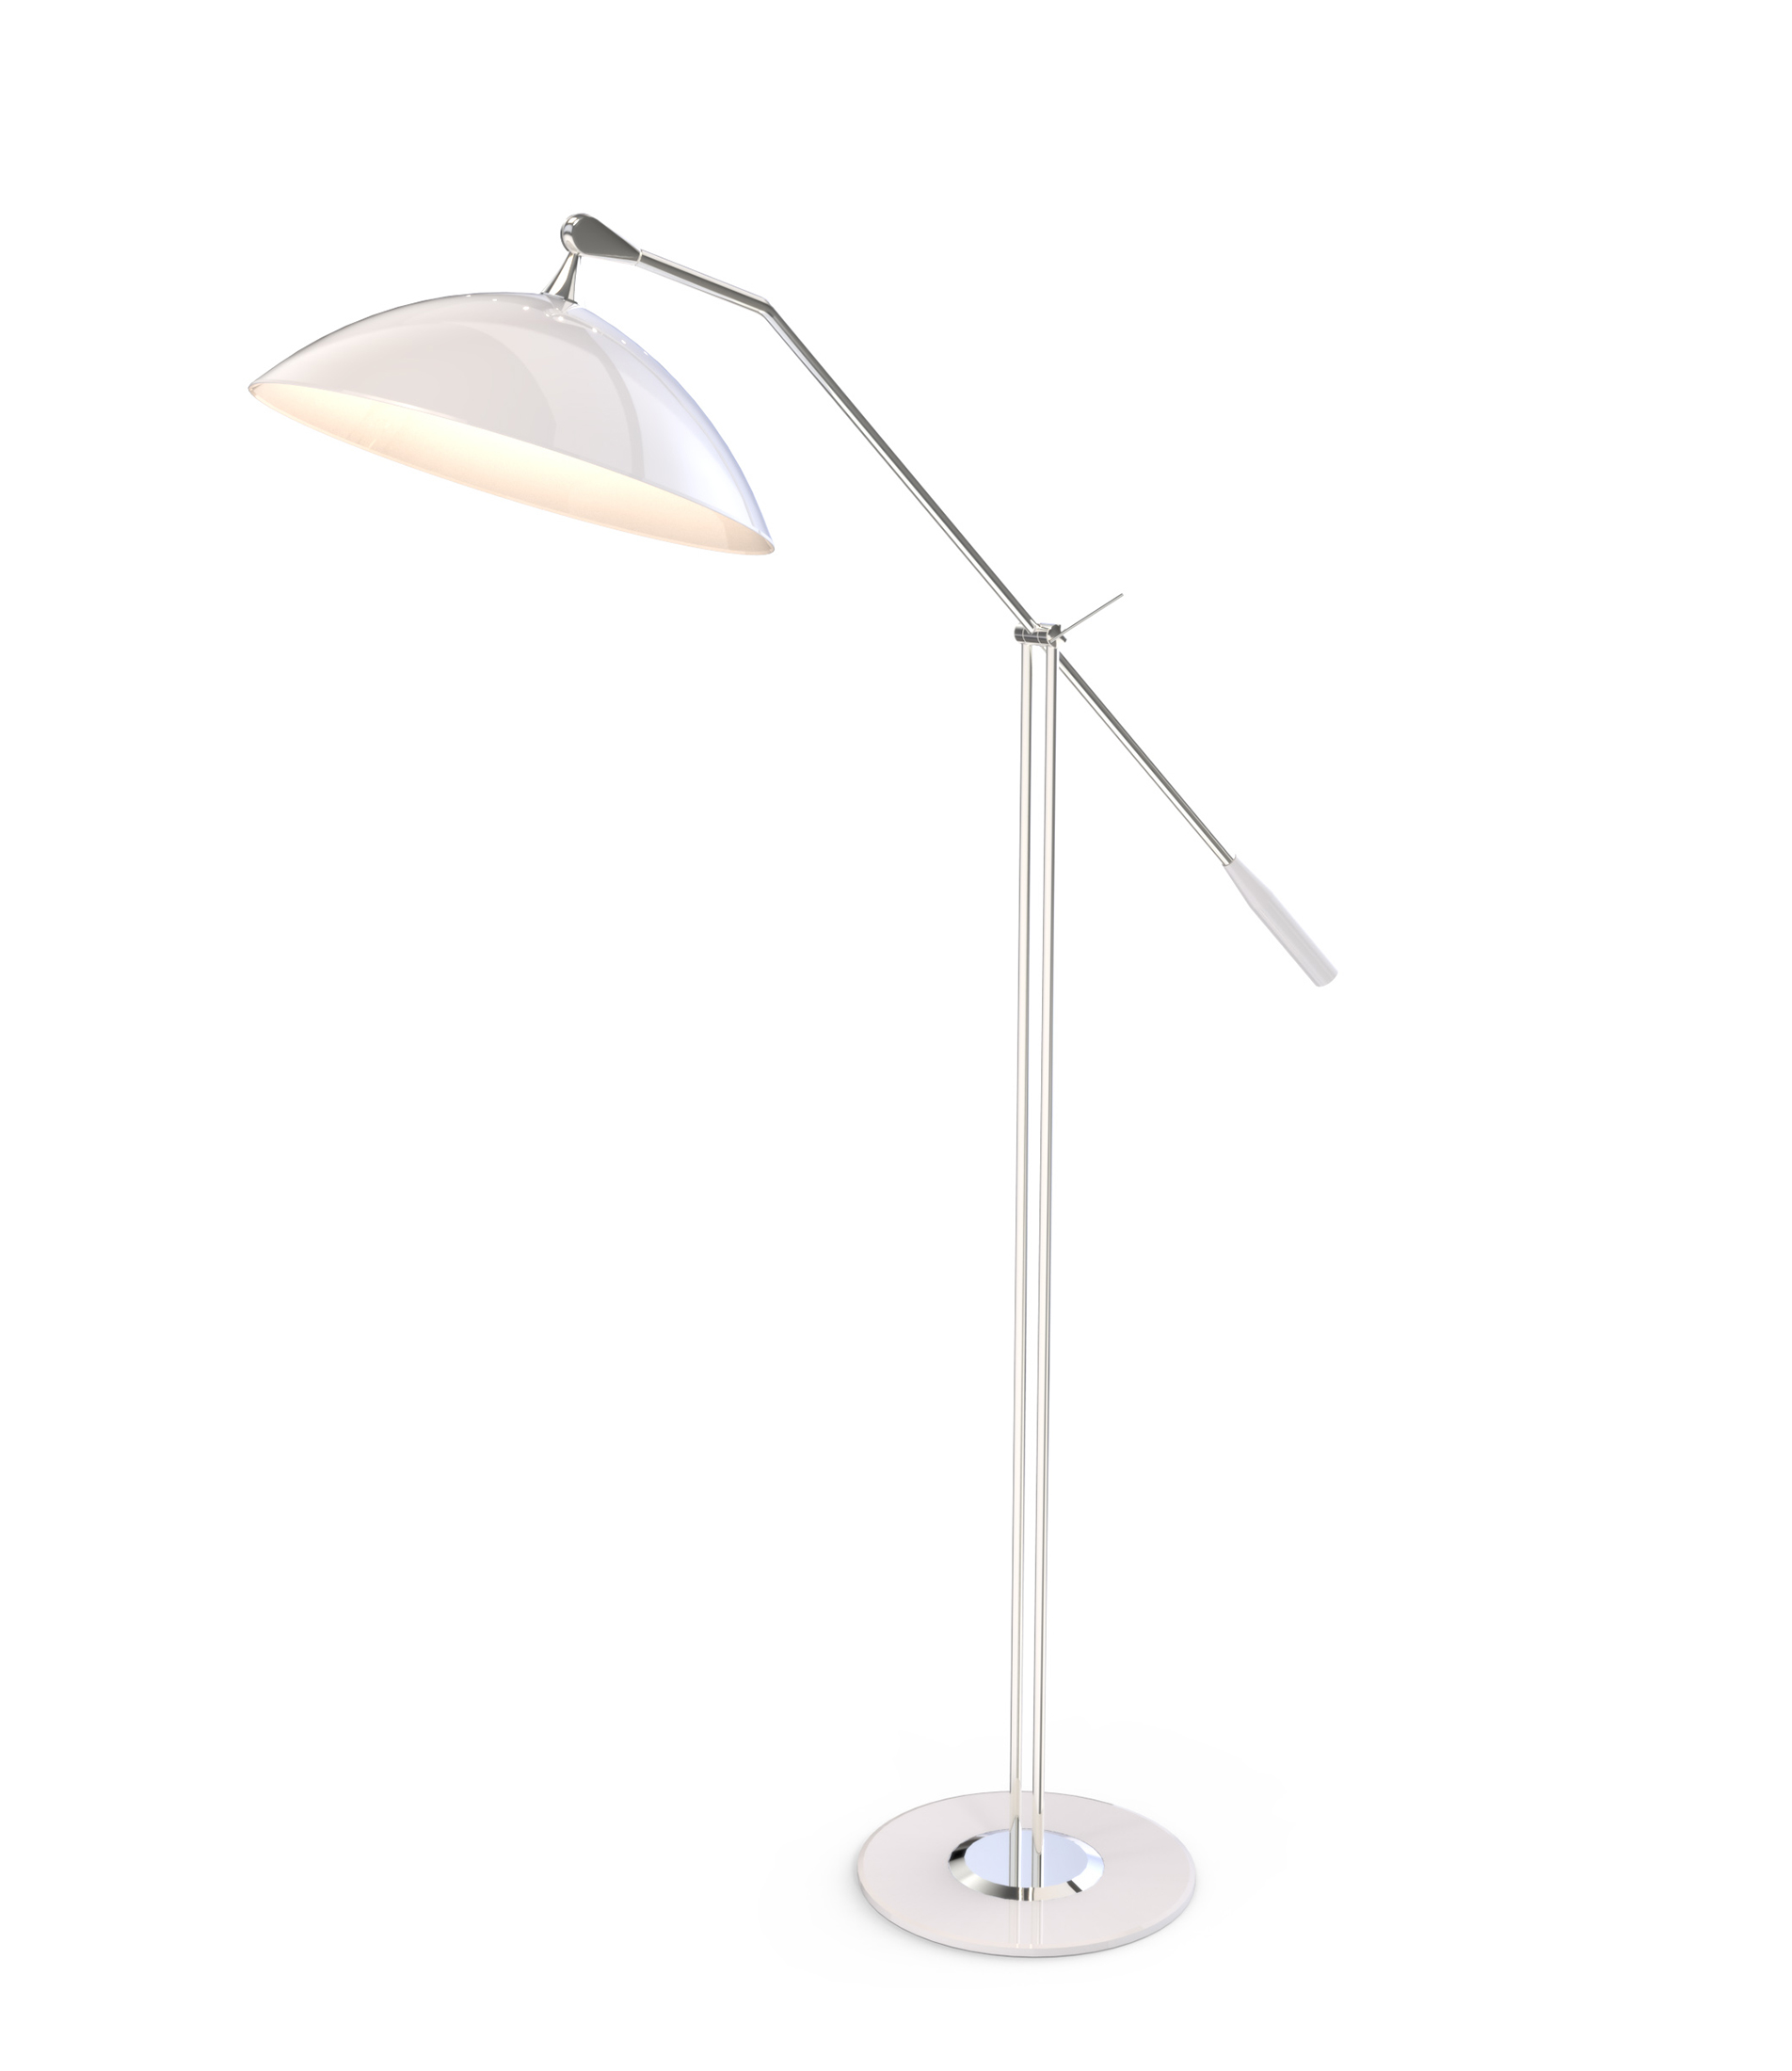 floor samples Floor Samples Gives You The Best Modern White Floor Lamps Floor Samples Gives You The Best Modern White Floor Lamps 4